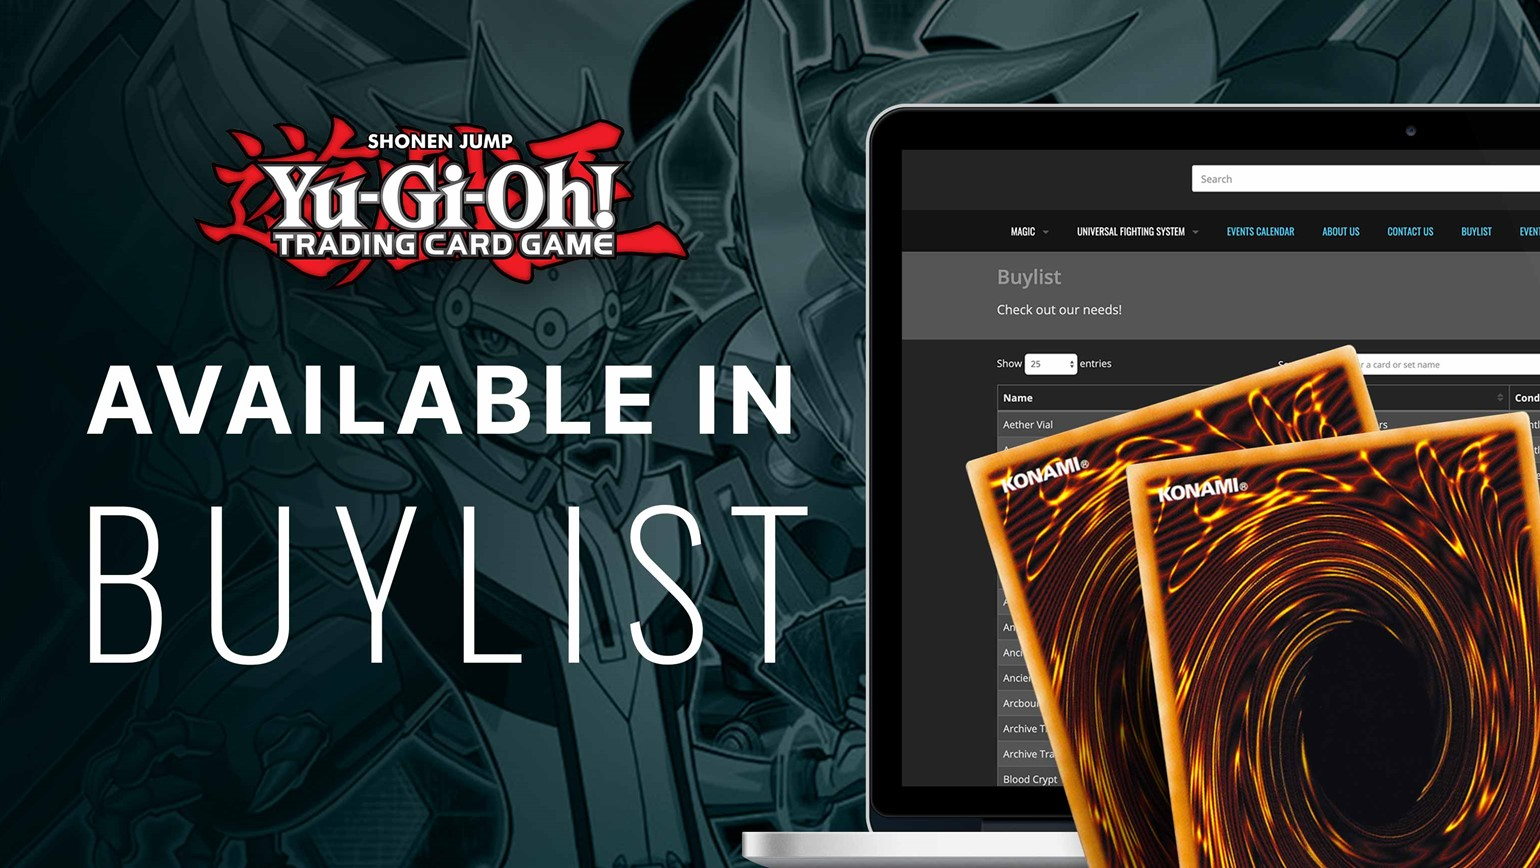 Yu-Gi-Oh! Now Live in Pro Buylist on Your Showcase and Website